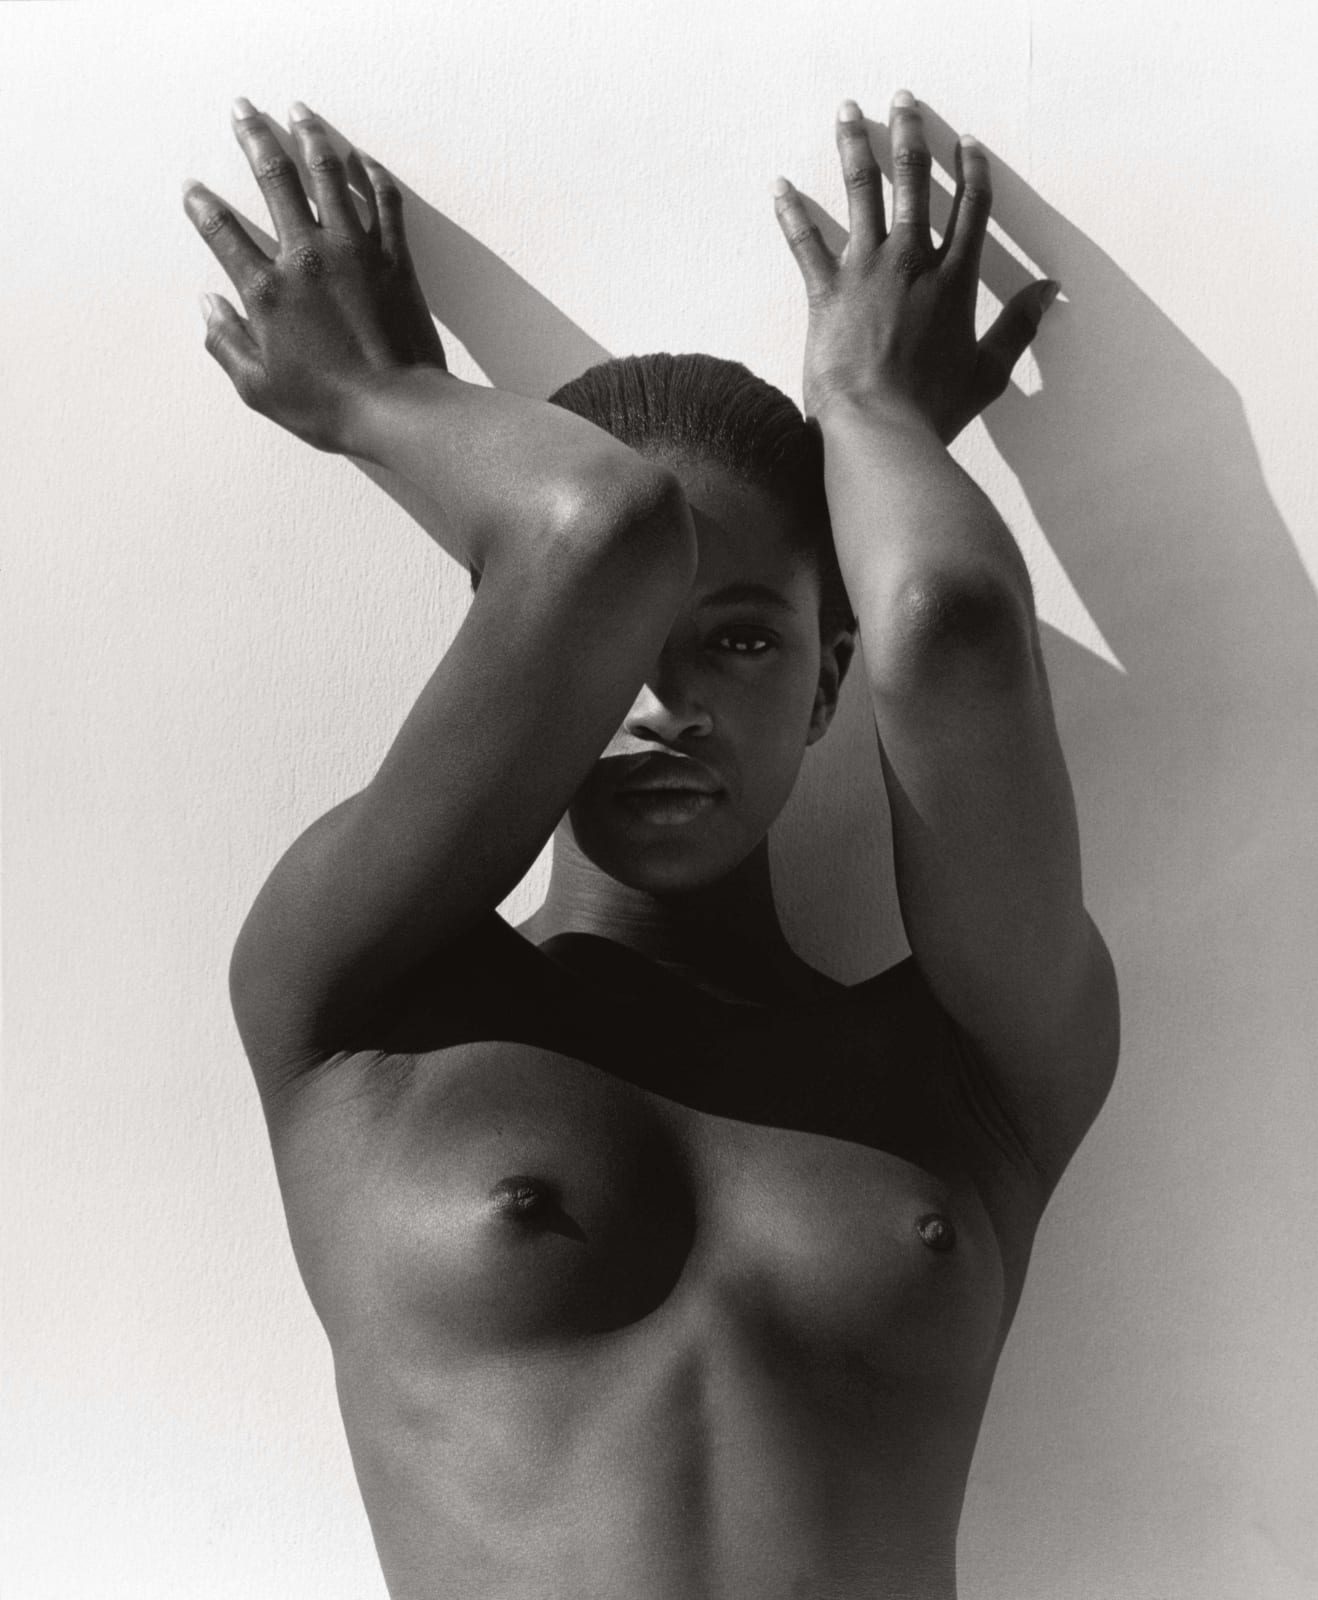 Herb Ritts, Naomi With Raised Arms, Los Angeles, 1988